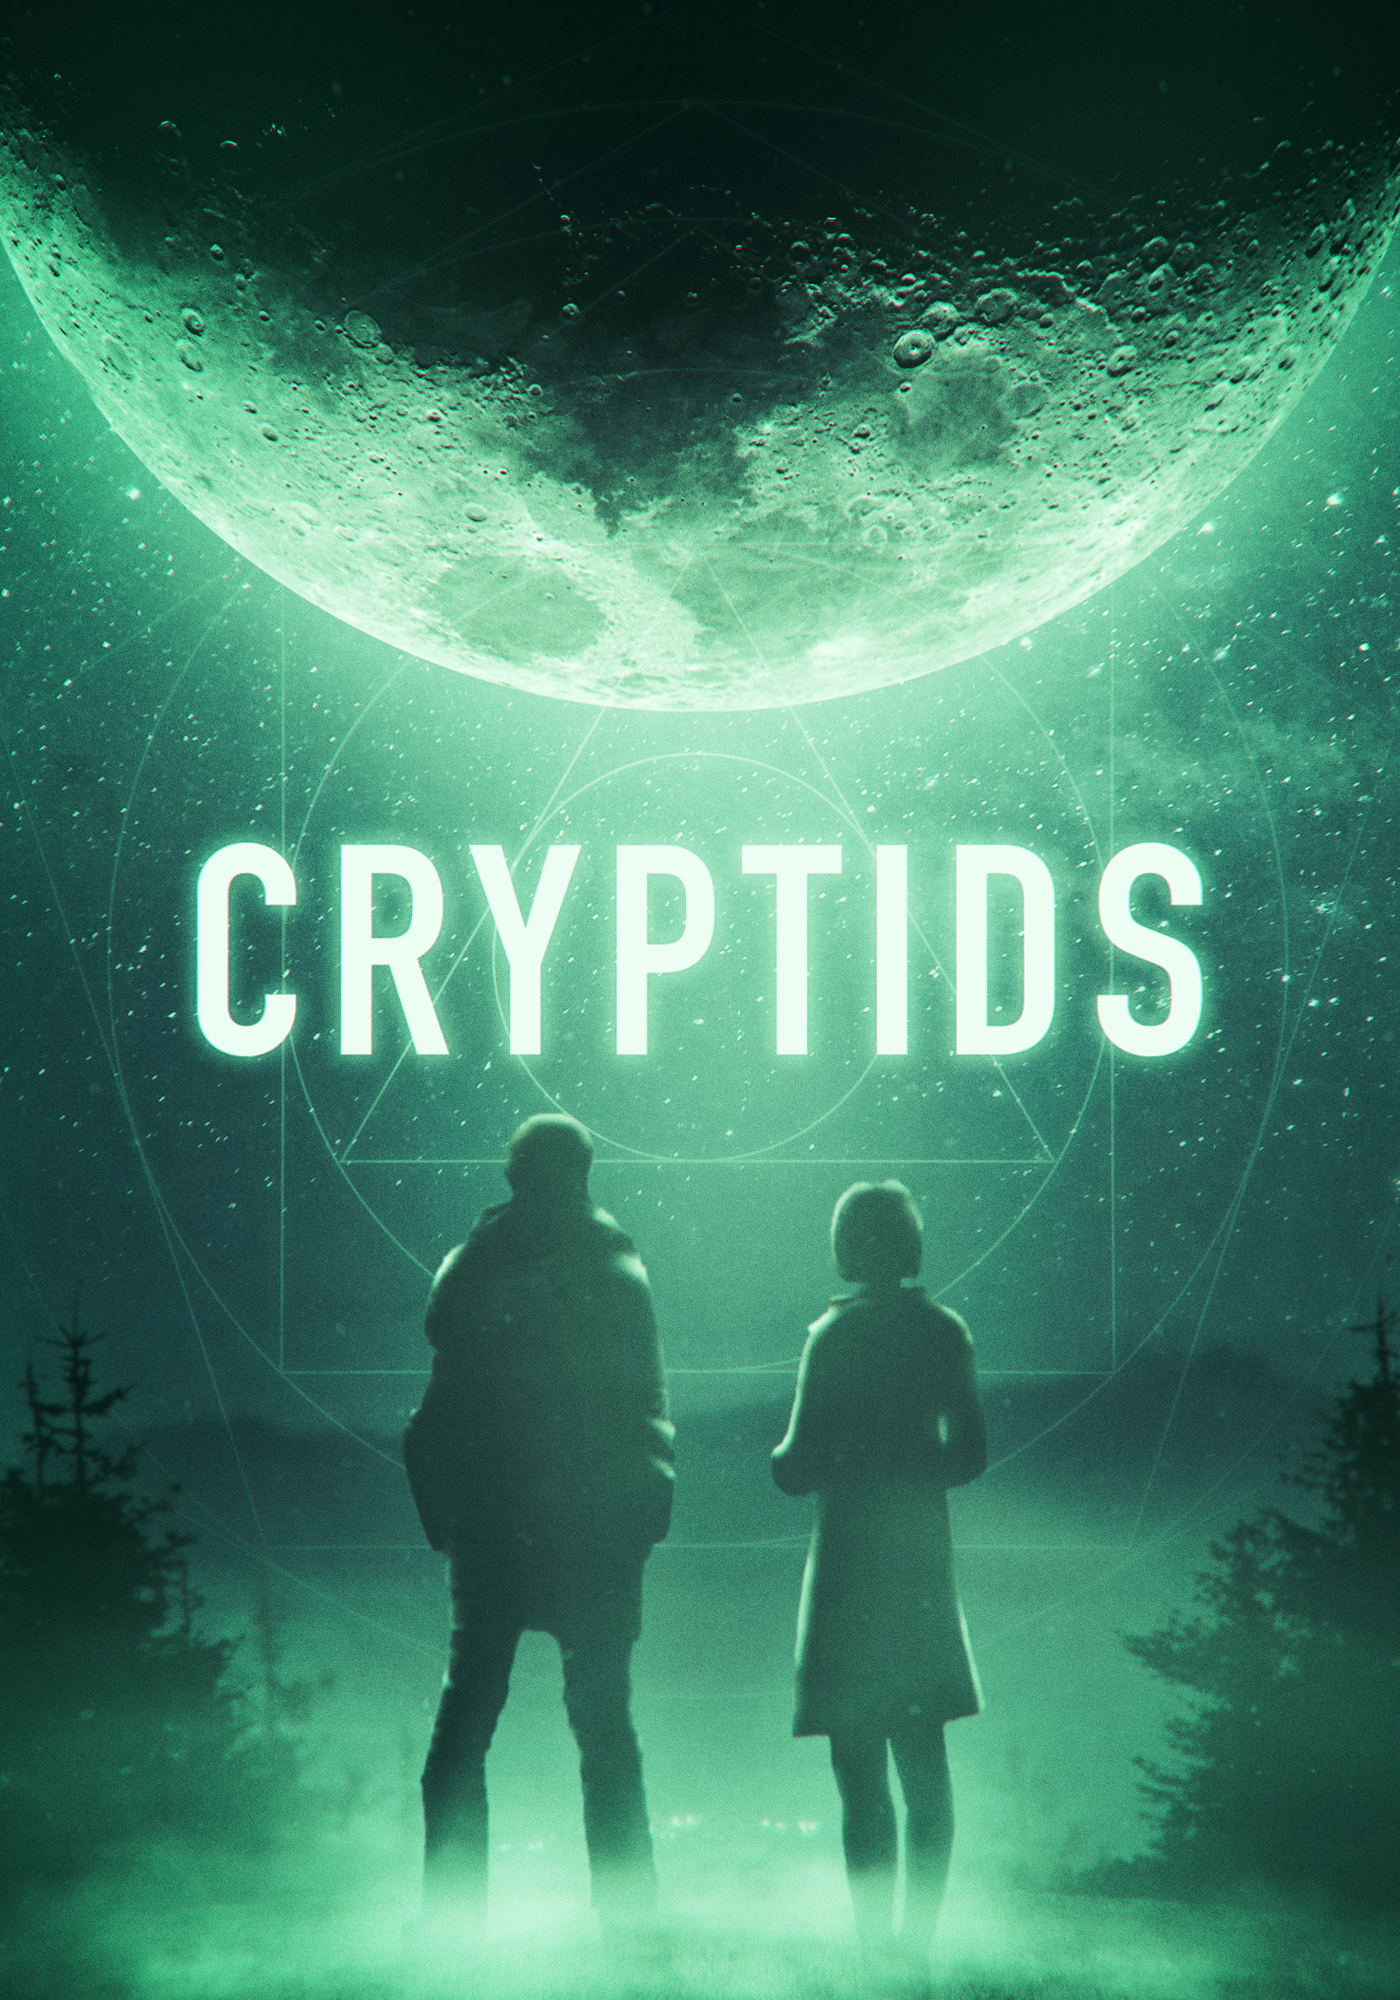 Cryptids-Extraordinary Claims